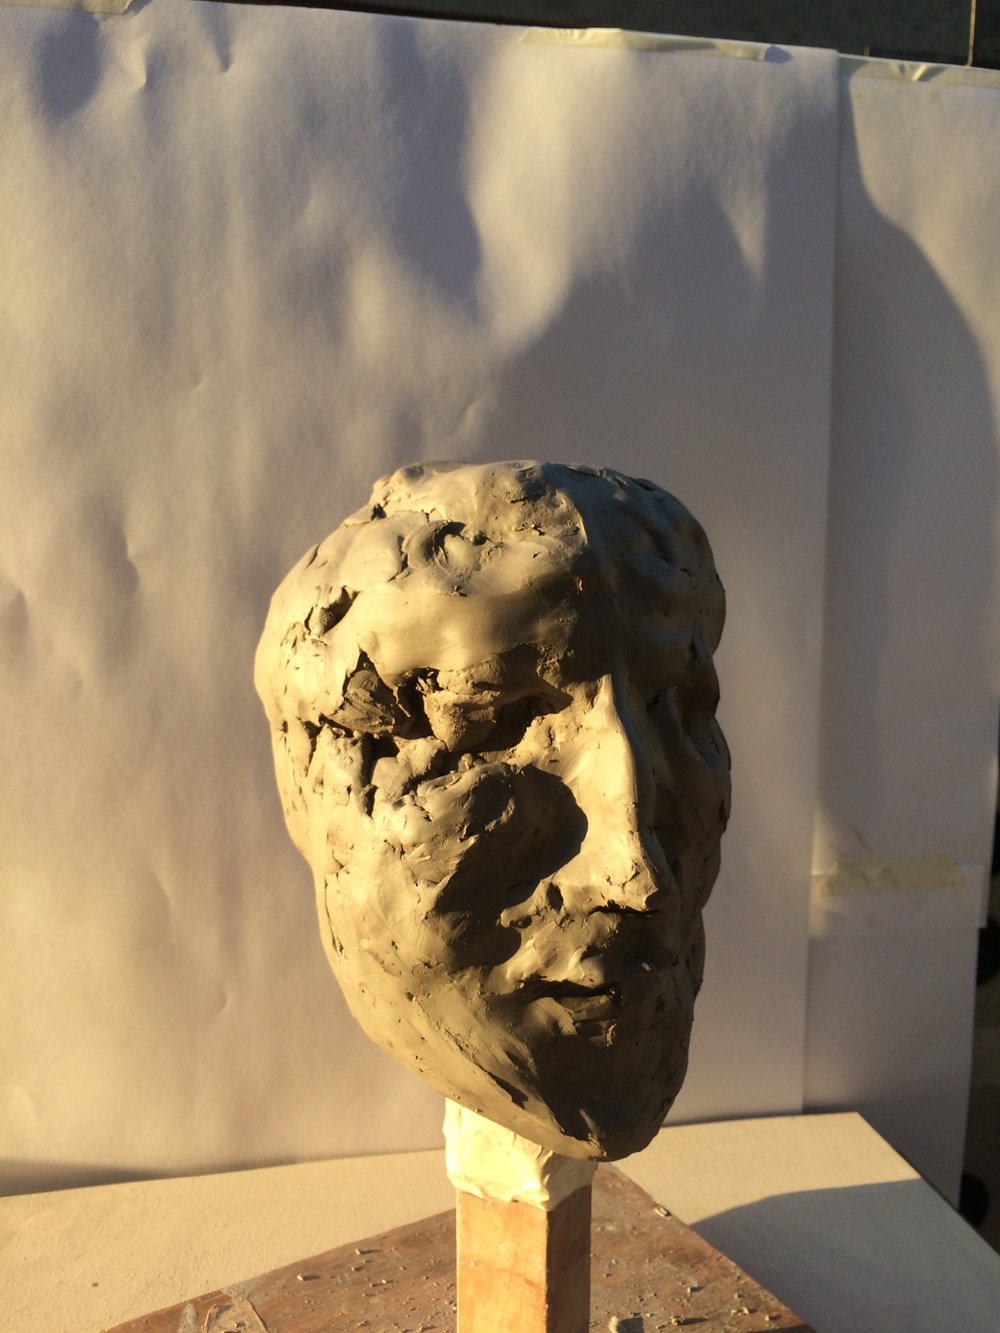 'Blind' self portrait in clay, London, February 2017